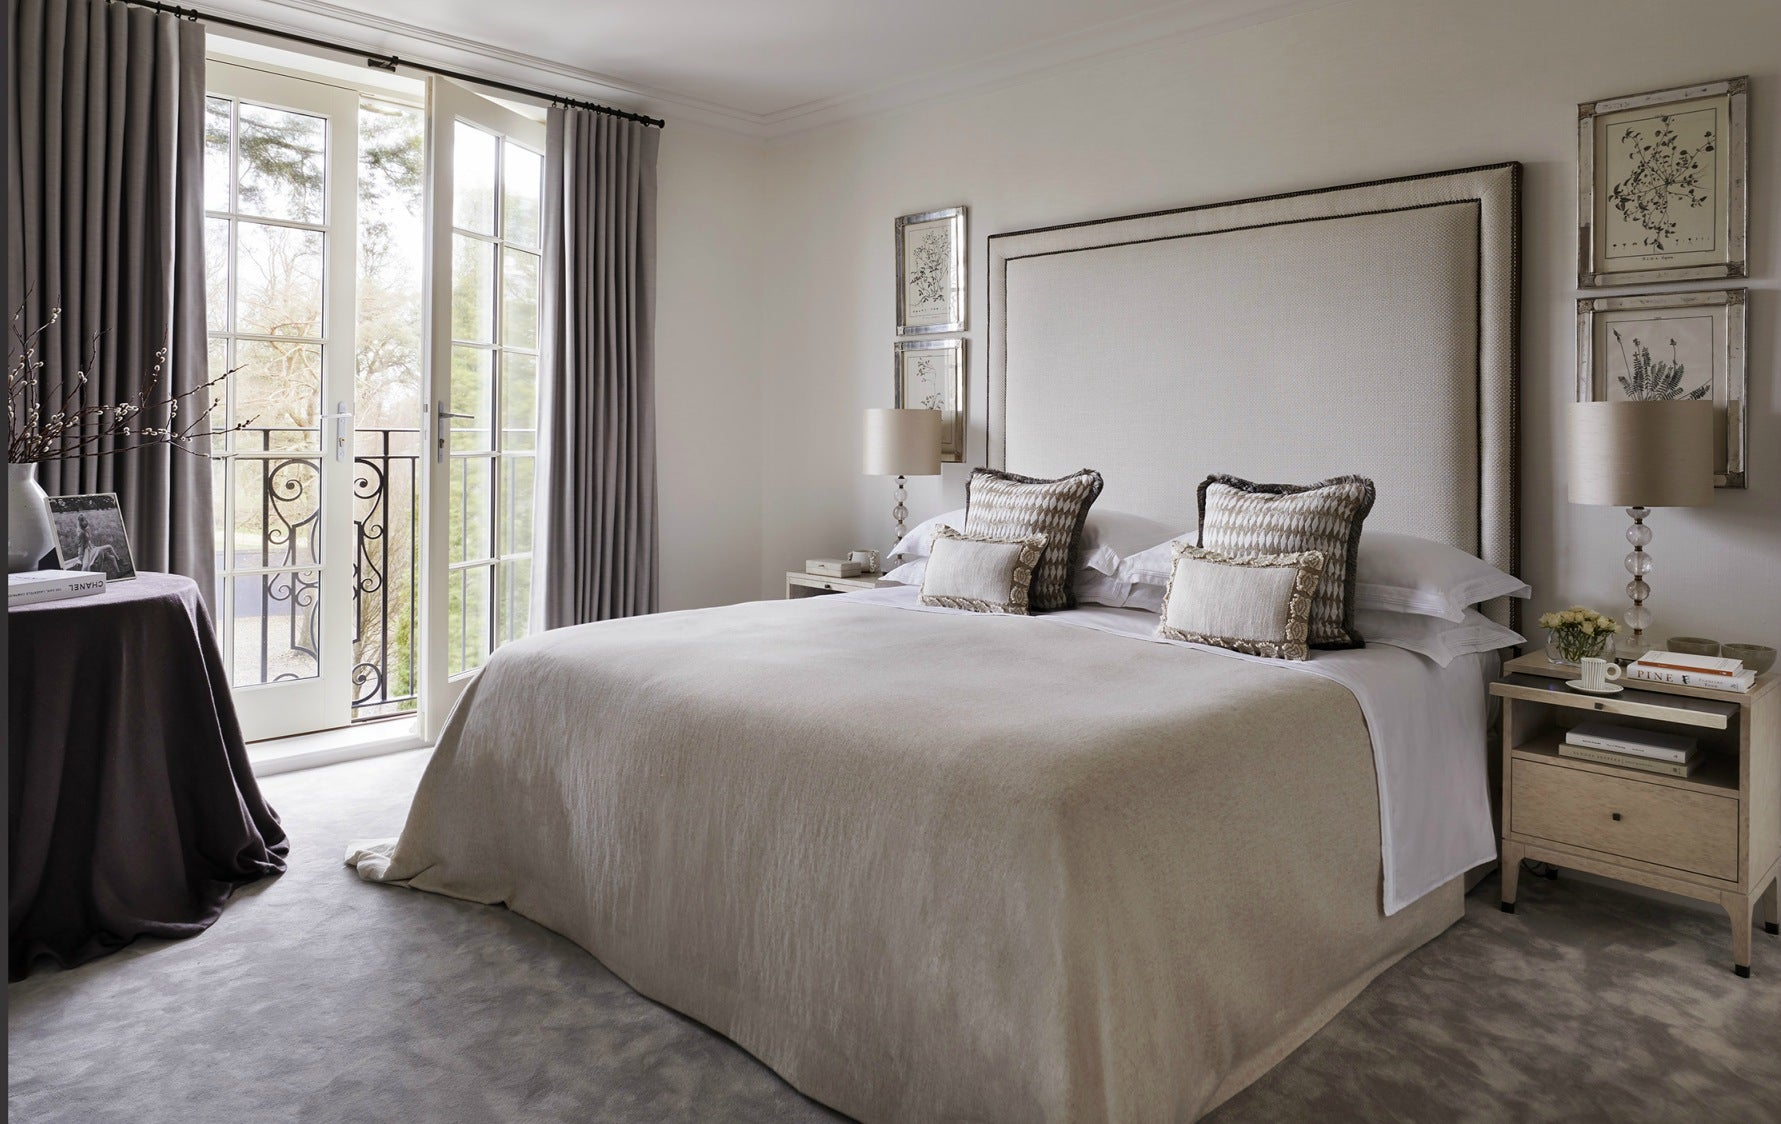 Modern Country Interiors | Interior design by Louise Bradley | Luxury Country Bedroom | The Luxurist